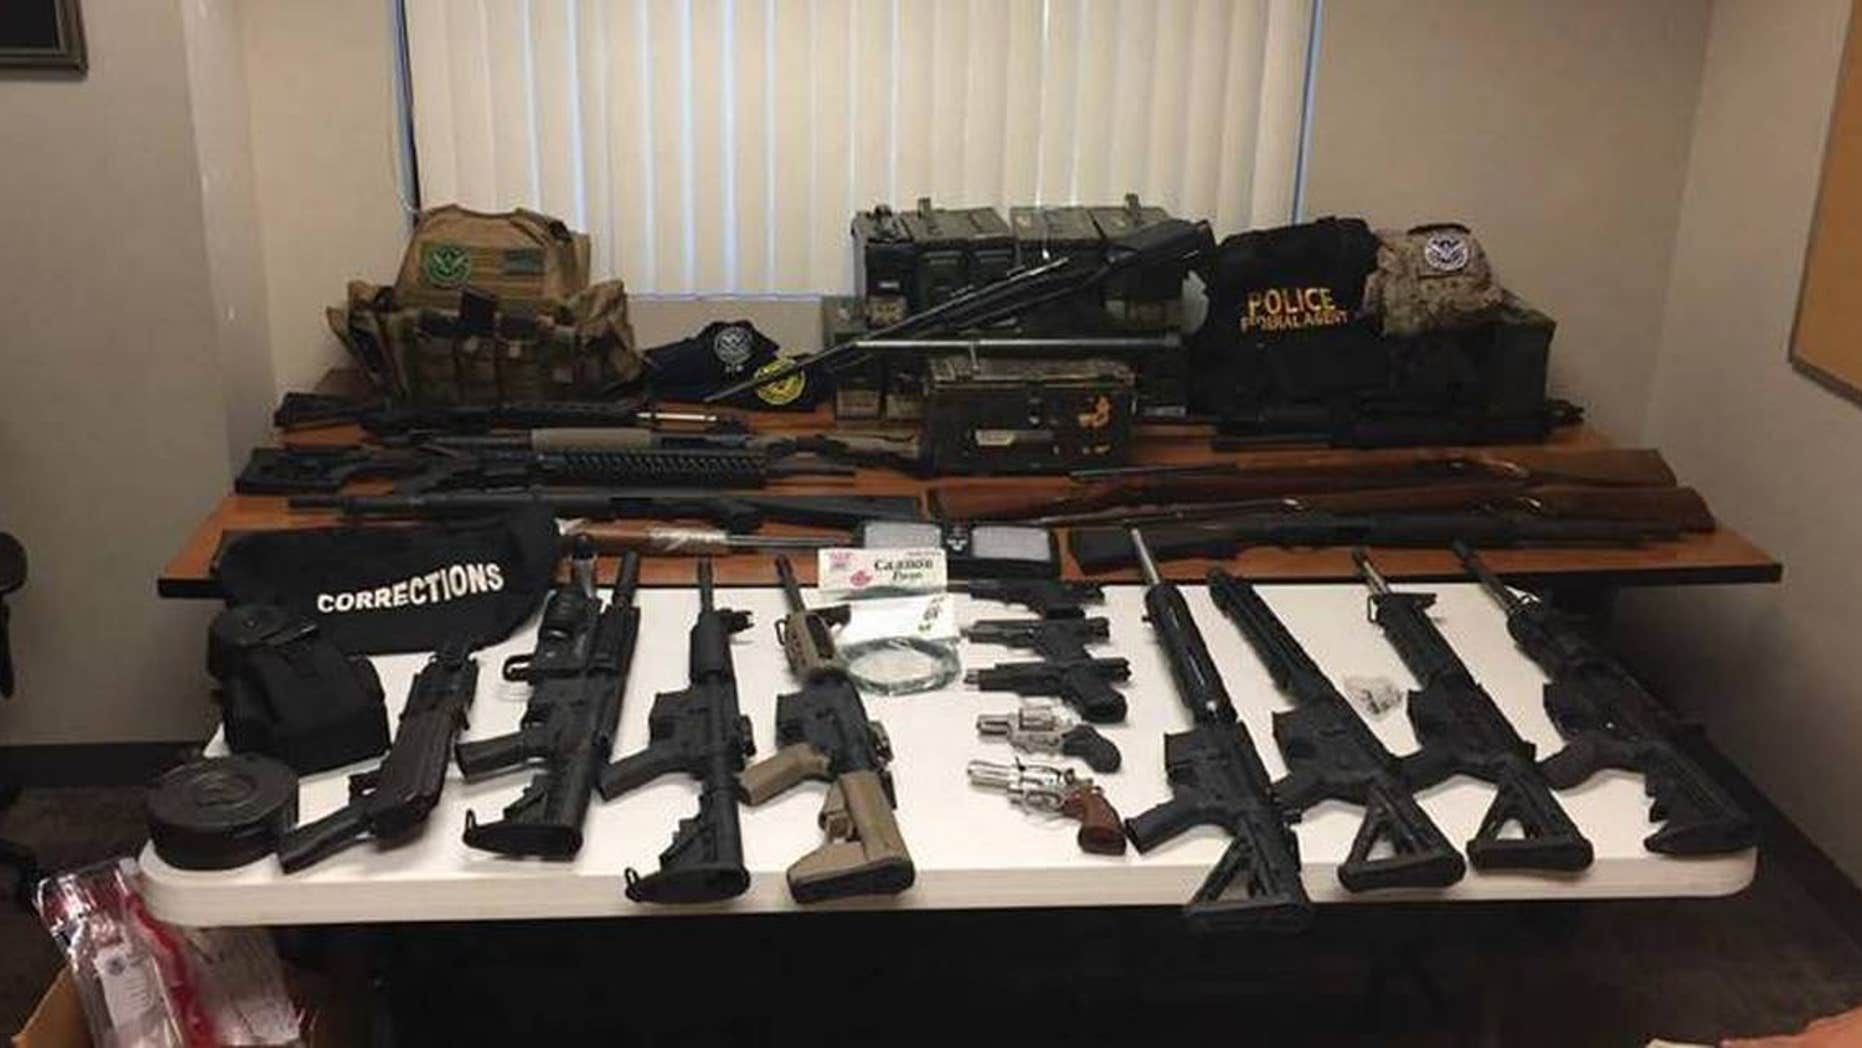 A search of Johnston's house yielded a cache of weapons and explosive devices, federal prosecutors said.